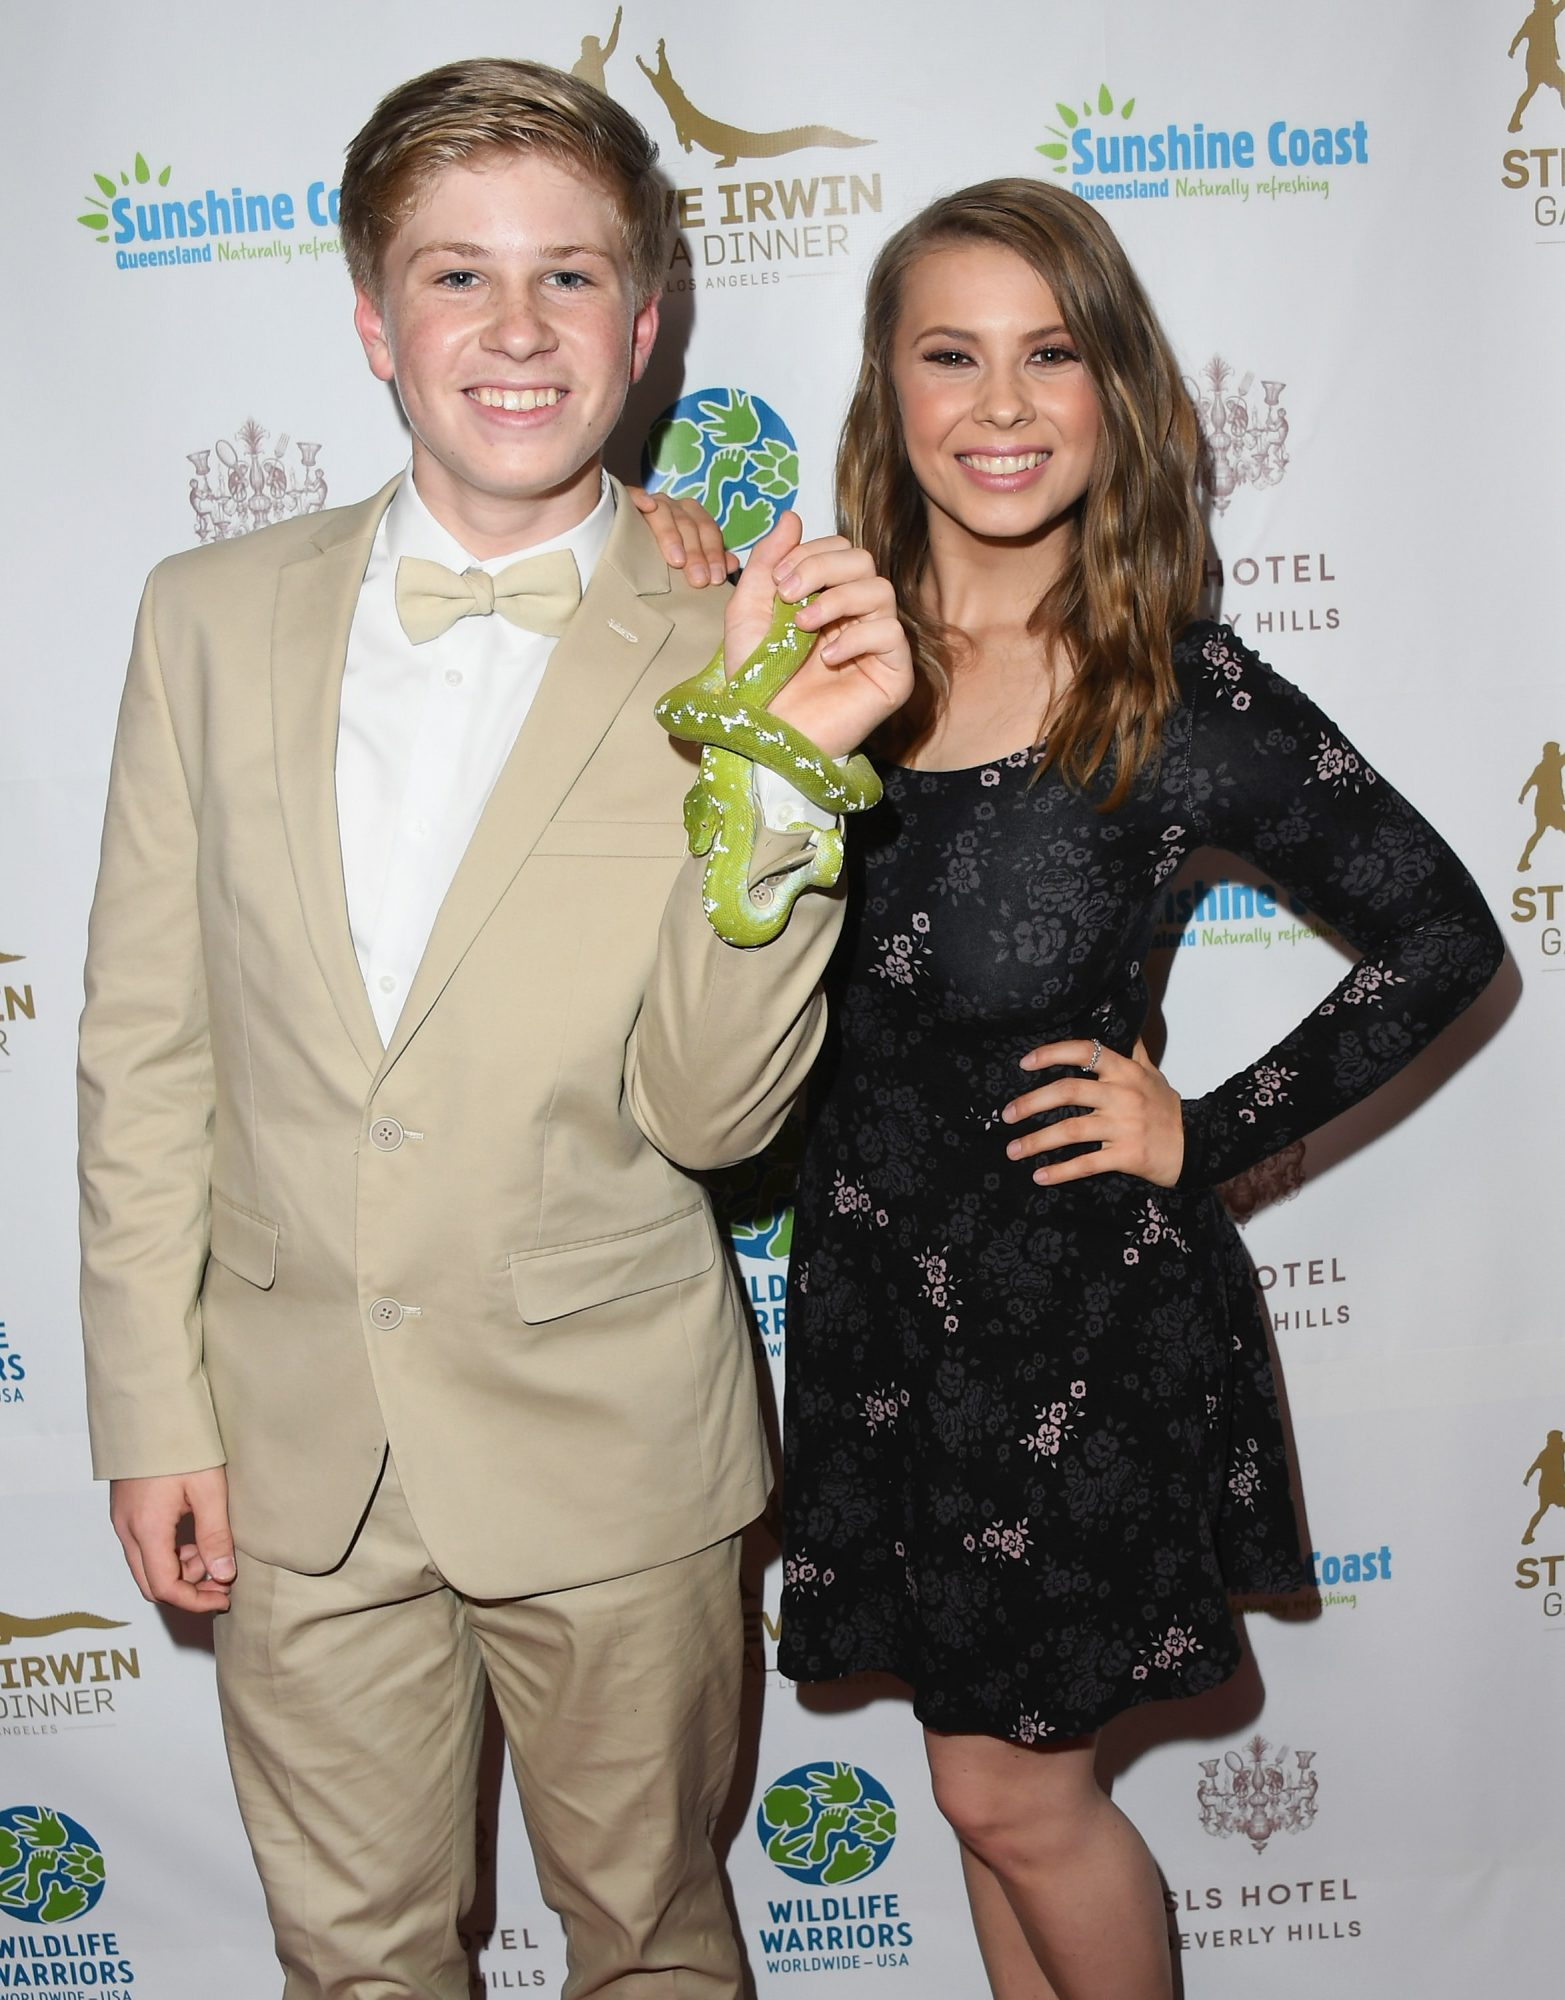 Robert Irwin and Bindi Irwin